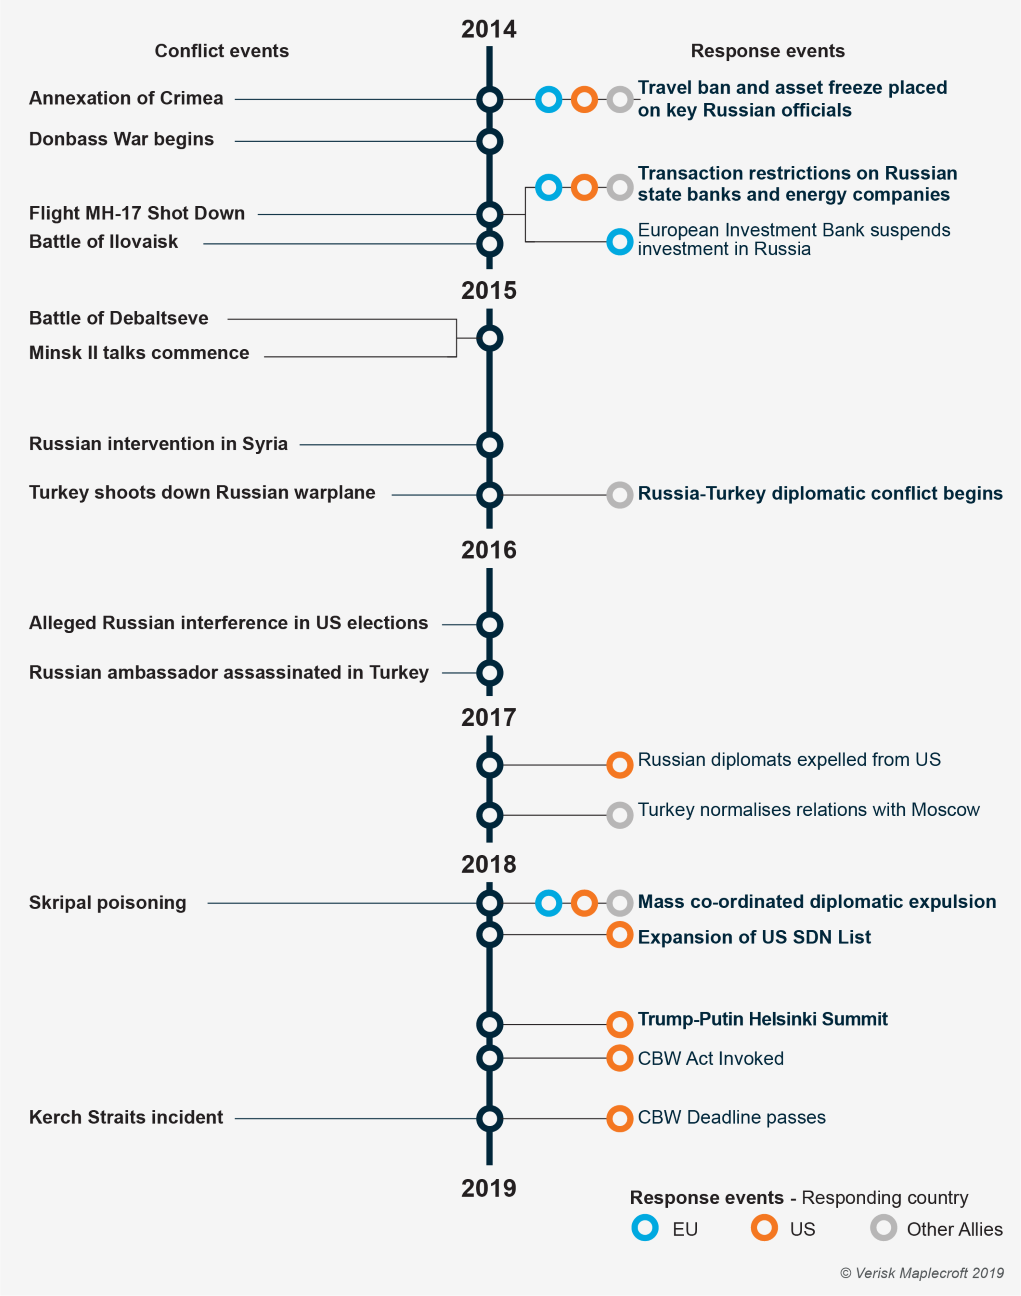 Timeline of Russian sanctions since 2014